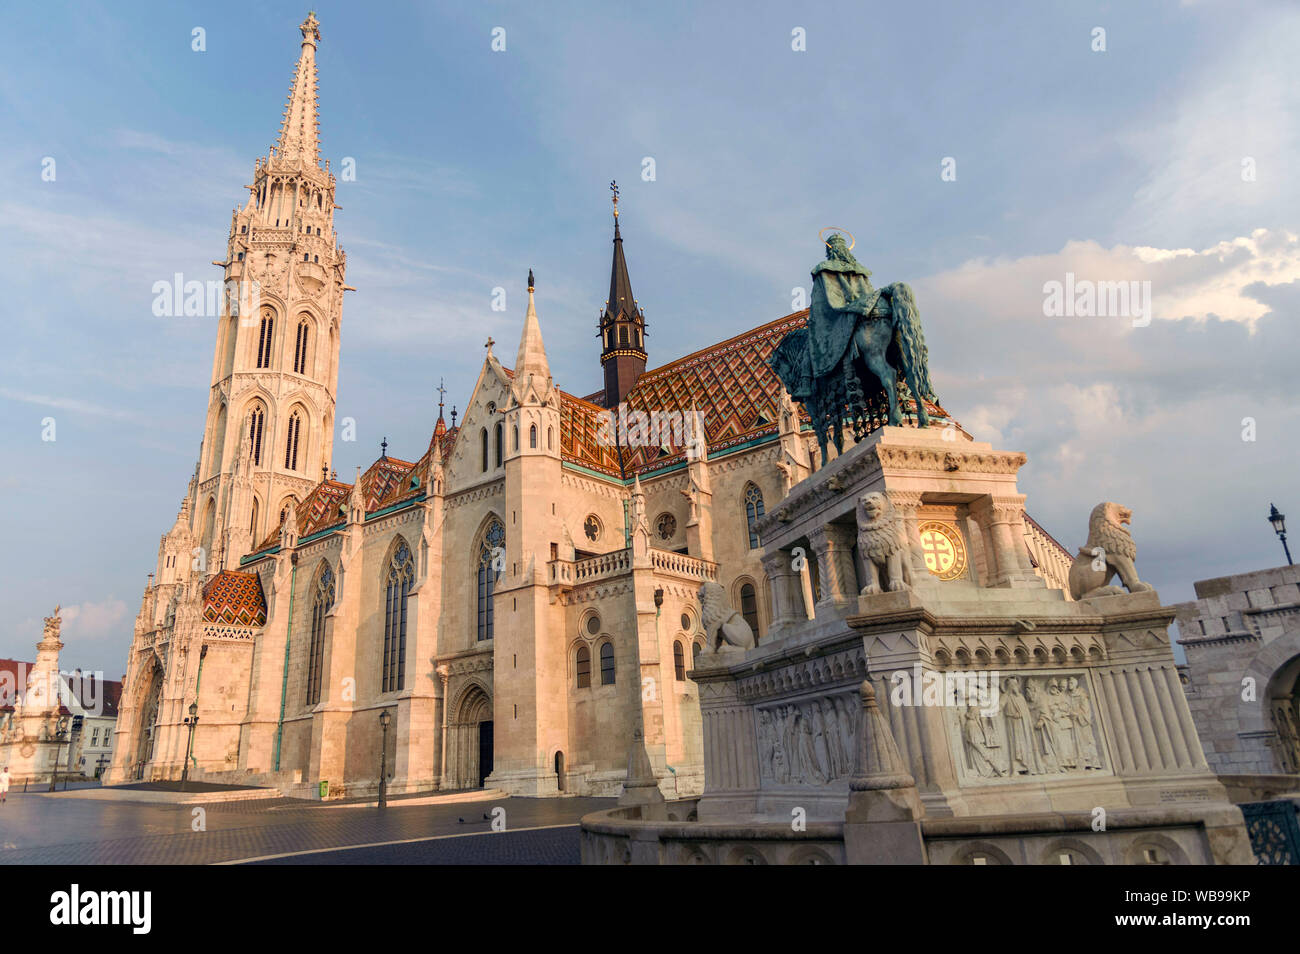 Statue of St. Stephen I in front of the Matthias Church / Mátyás-templom. Budapest, 24.08.2019 | usage worldwide Stock Photo